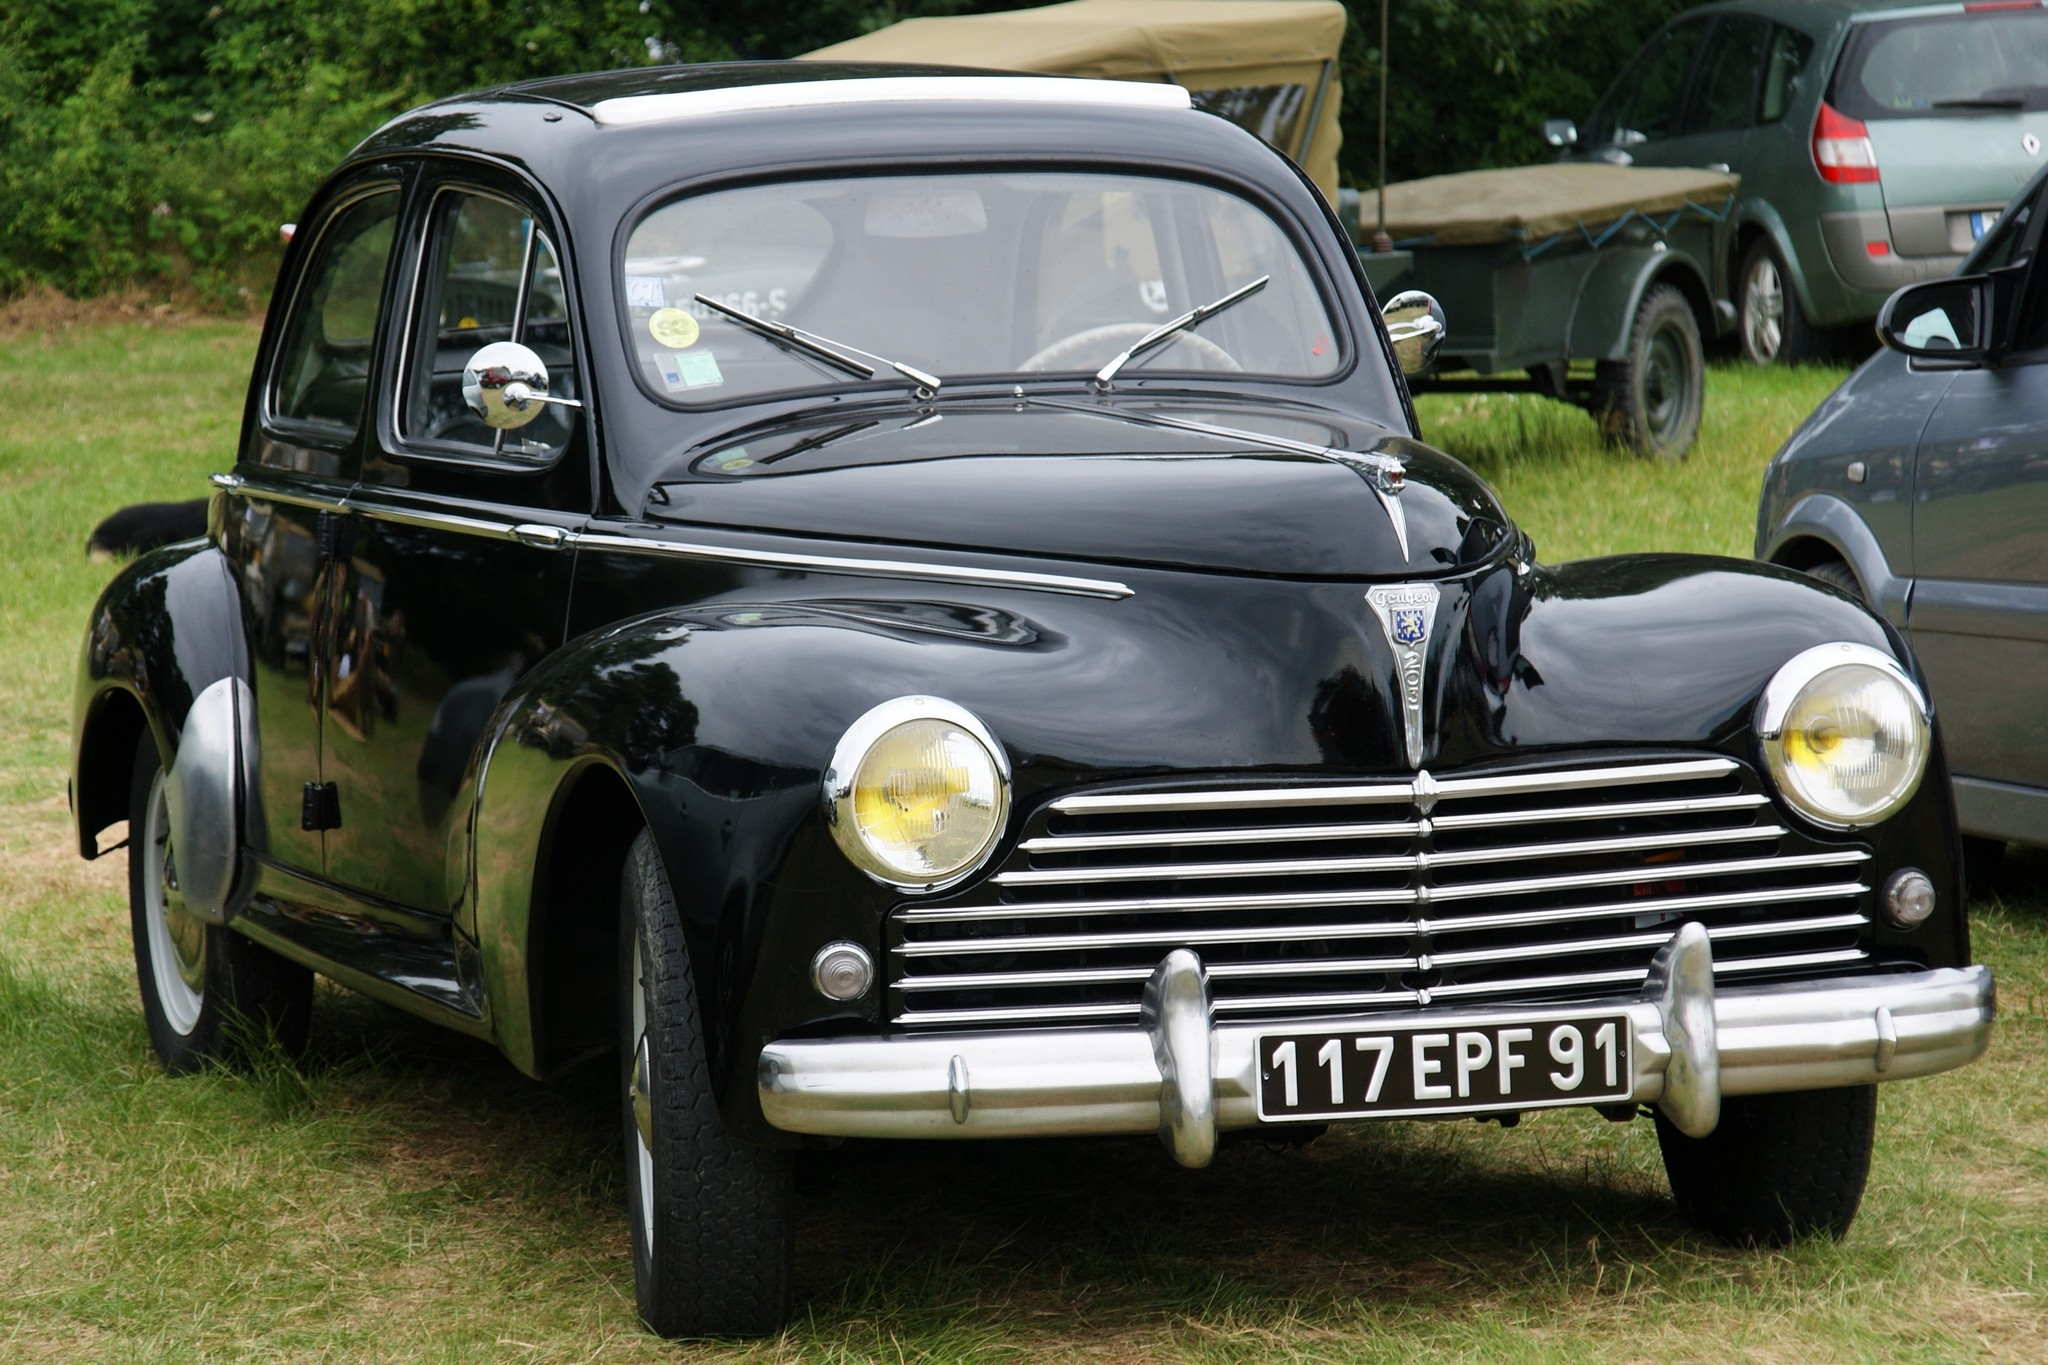 File:Peugeot 203 - Flickr - besopha.jpg